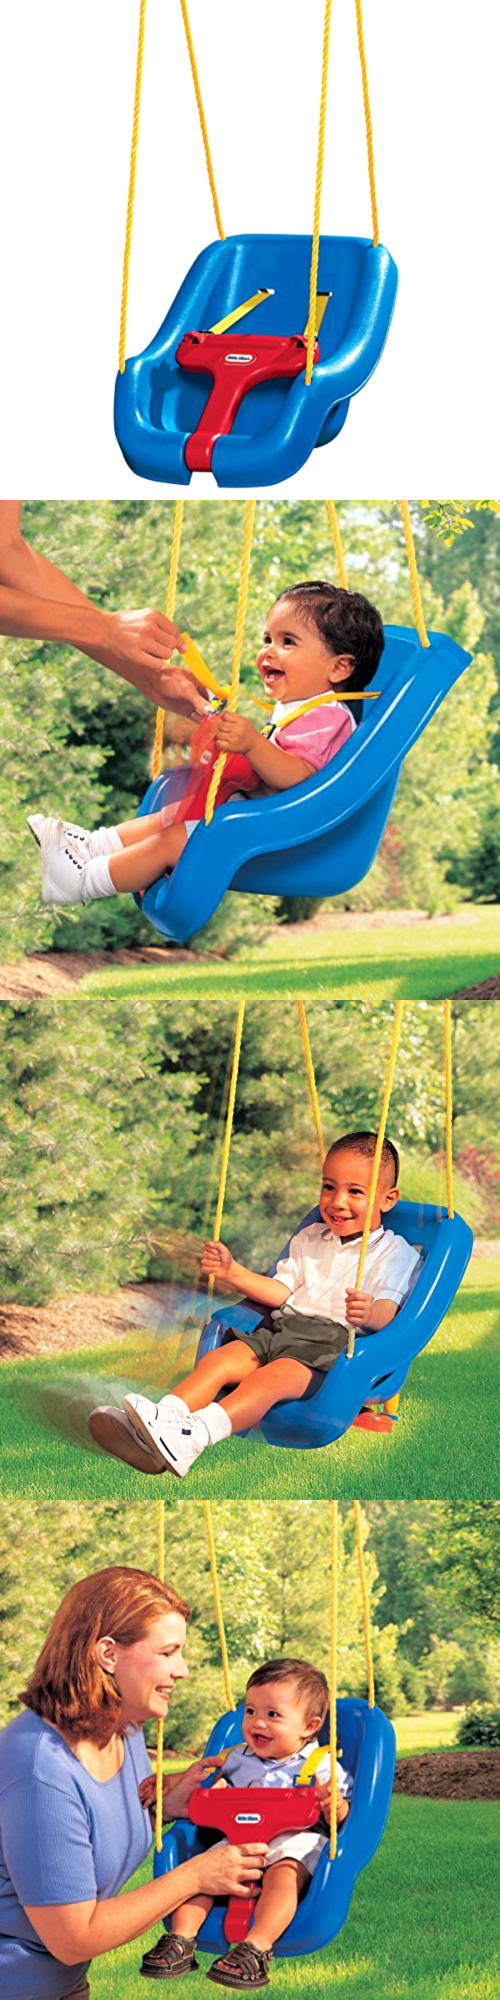 Swings slides and gyms swing seat hanging chair outdoor baby